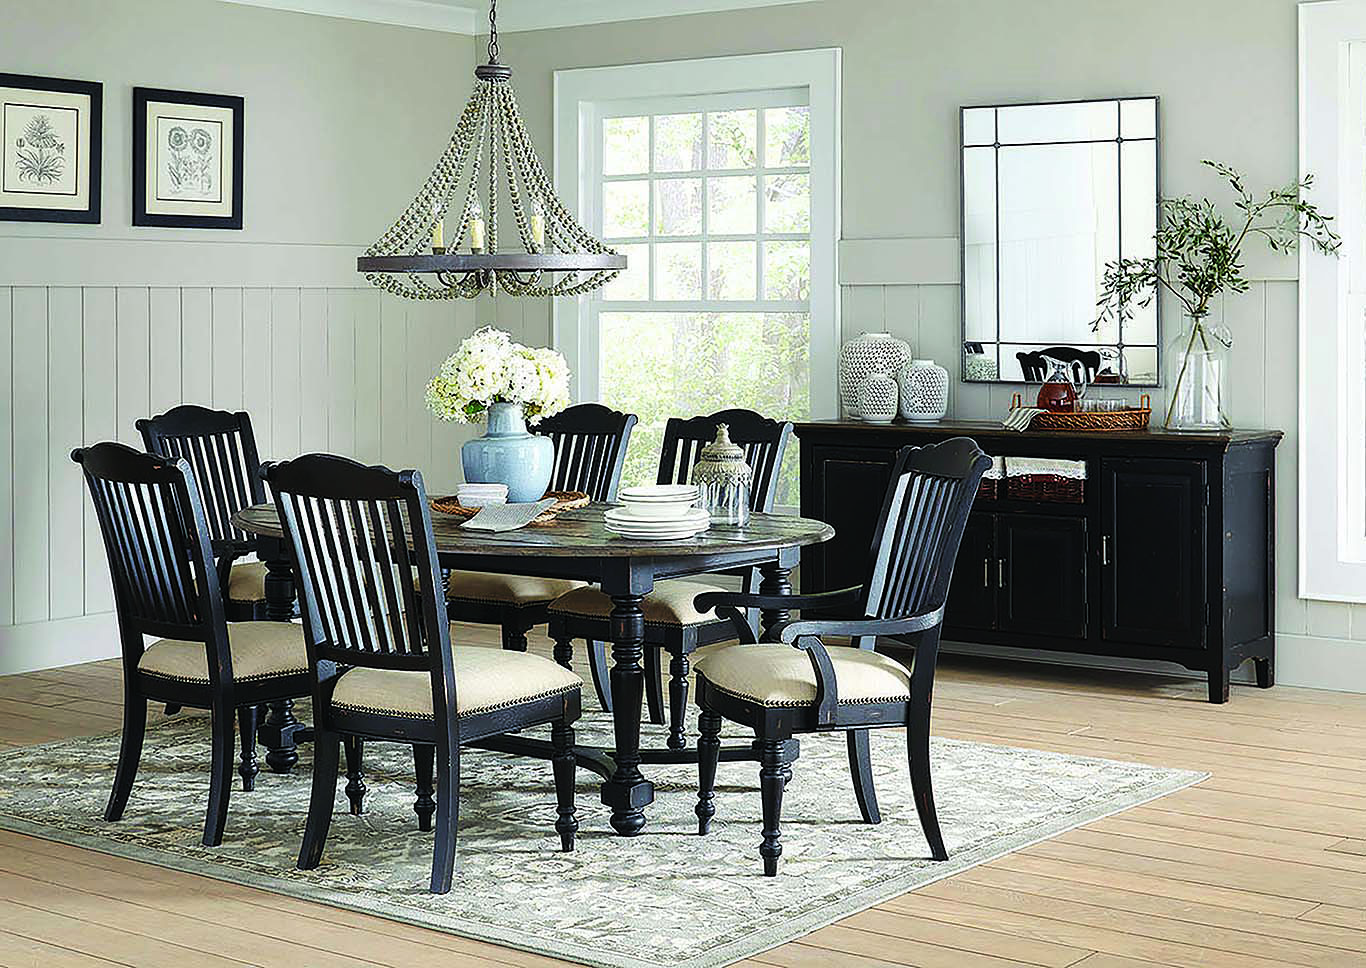 Vintage Black/Latte Oval 7pc Dining Table w/4 Side Chairs & 2 Arm Chairs,Coaster Furniture